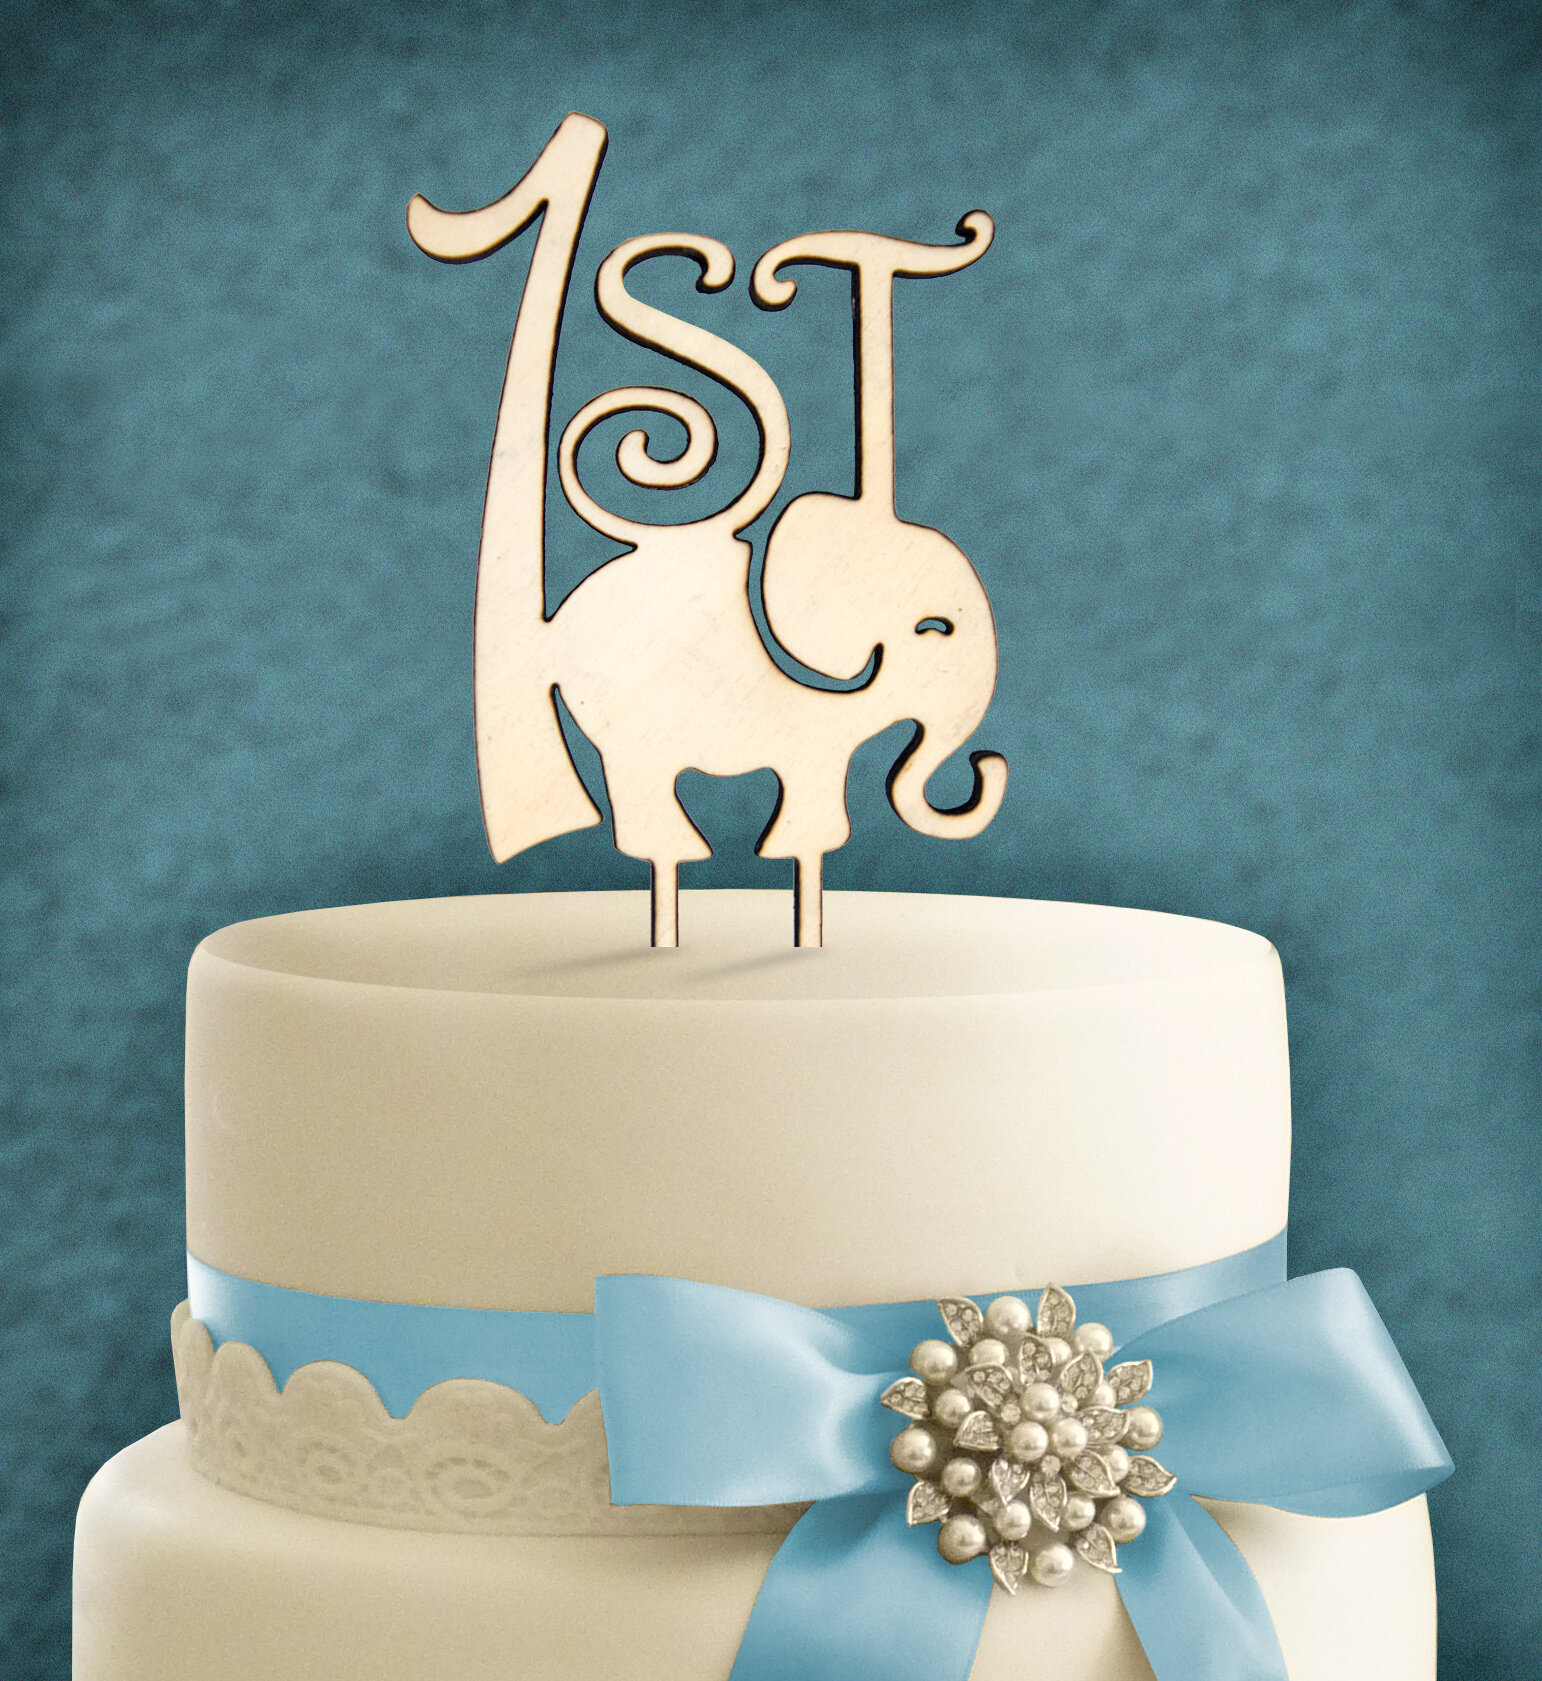 Tremendous Amonogramartunlimited 1St Birthday Elephant Cake Topper Wayfair Personalised Birthday Cards Arneslily Jamesorg